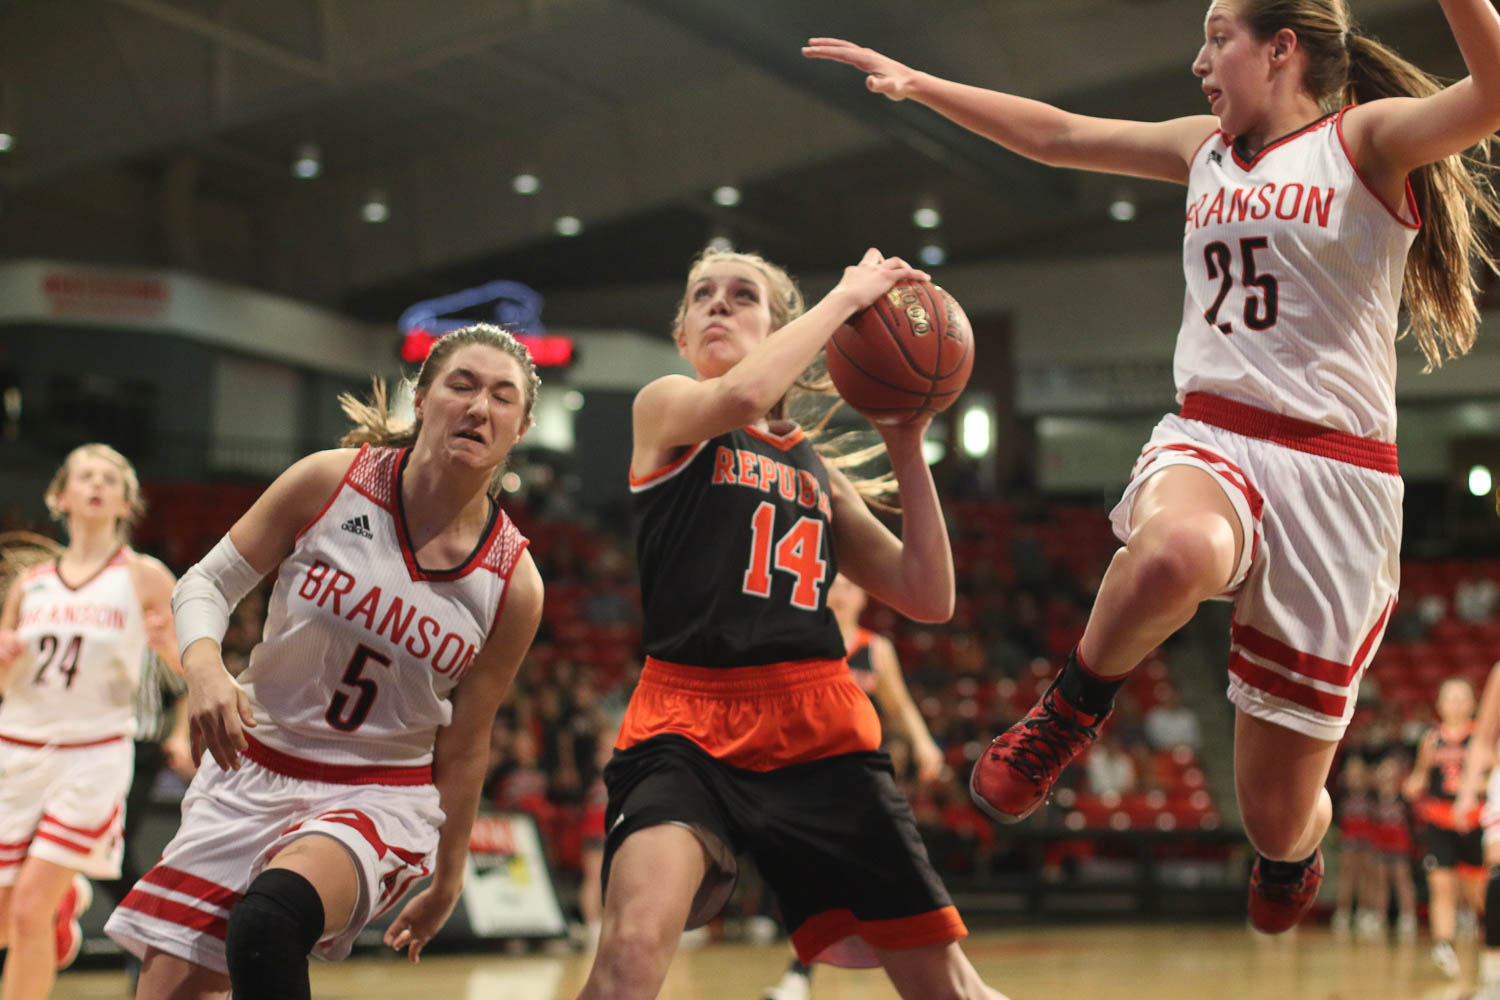 Branson D Befuddles Lady Tigers In Season-Ending Loss